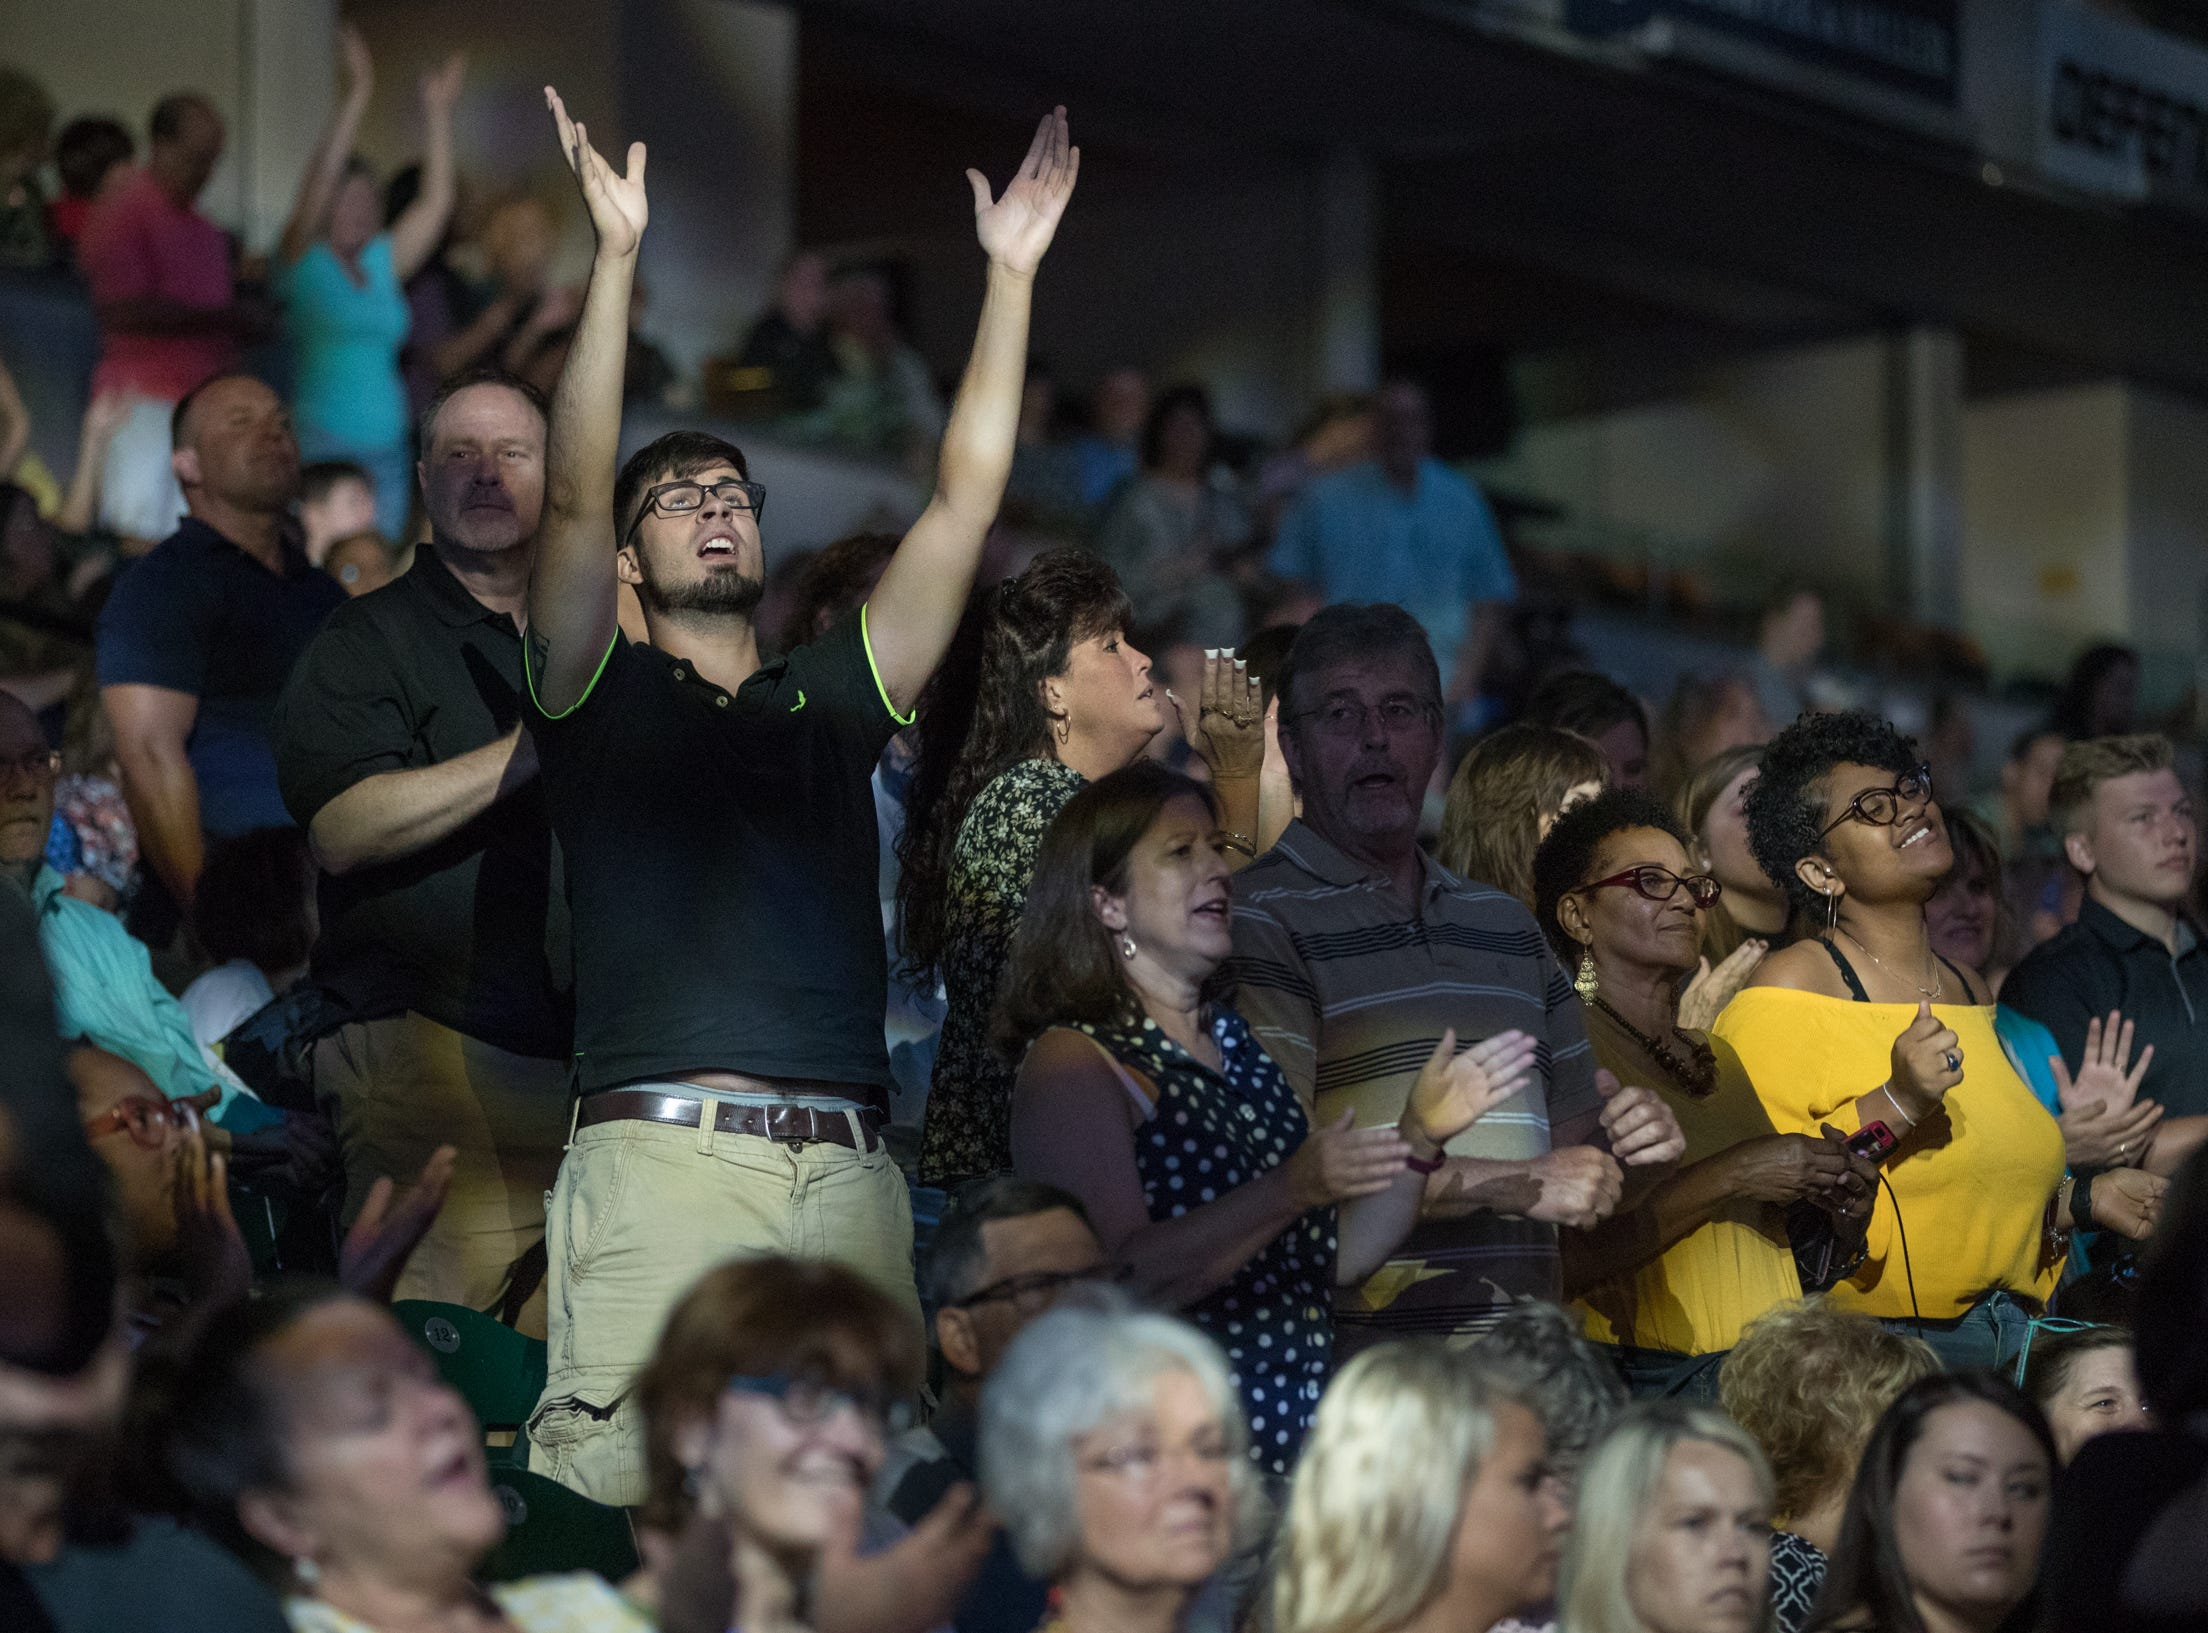 Fans watch a praise band play at Bankers Life Fieldhouse, Indianapolis, Friday, Aug. 10, 2018. The event, dubbed Night of Hope with Joel and Victoria, drew about 8,000 people to the arena for the event with the Houston-based televangelist.